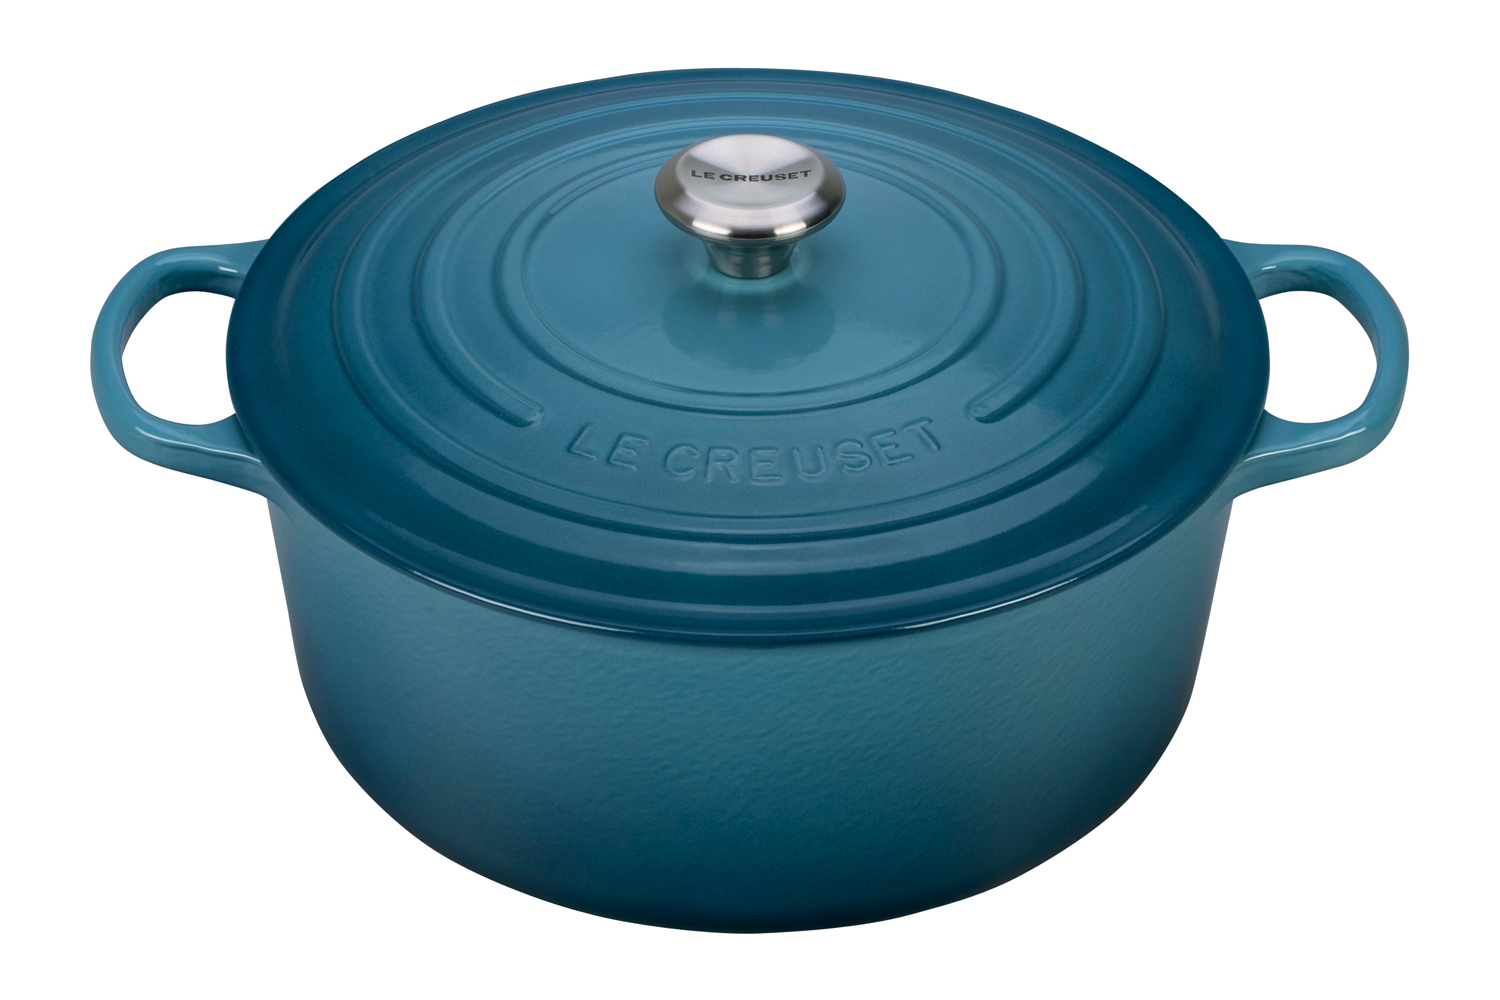 Le Creuset Signature Cast Iron 13 1/4 qt. Round Dutch Oven - Marine